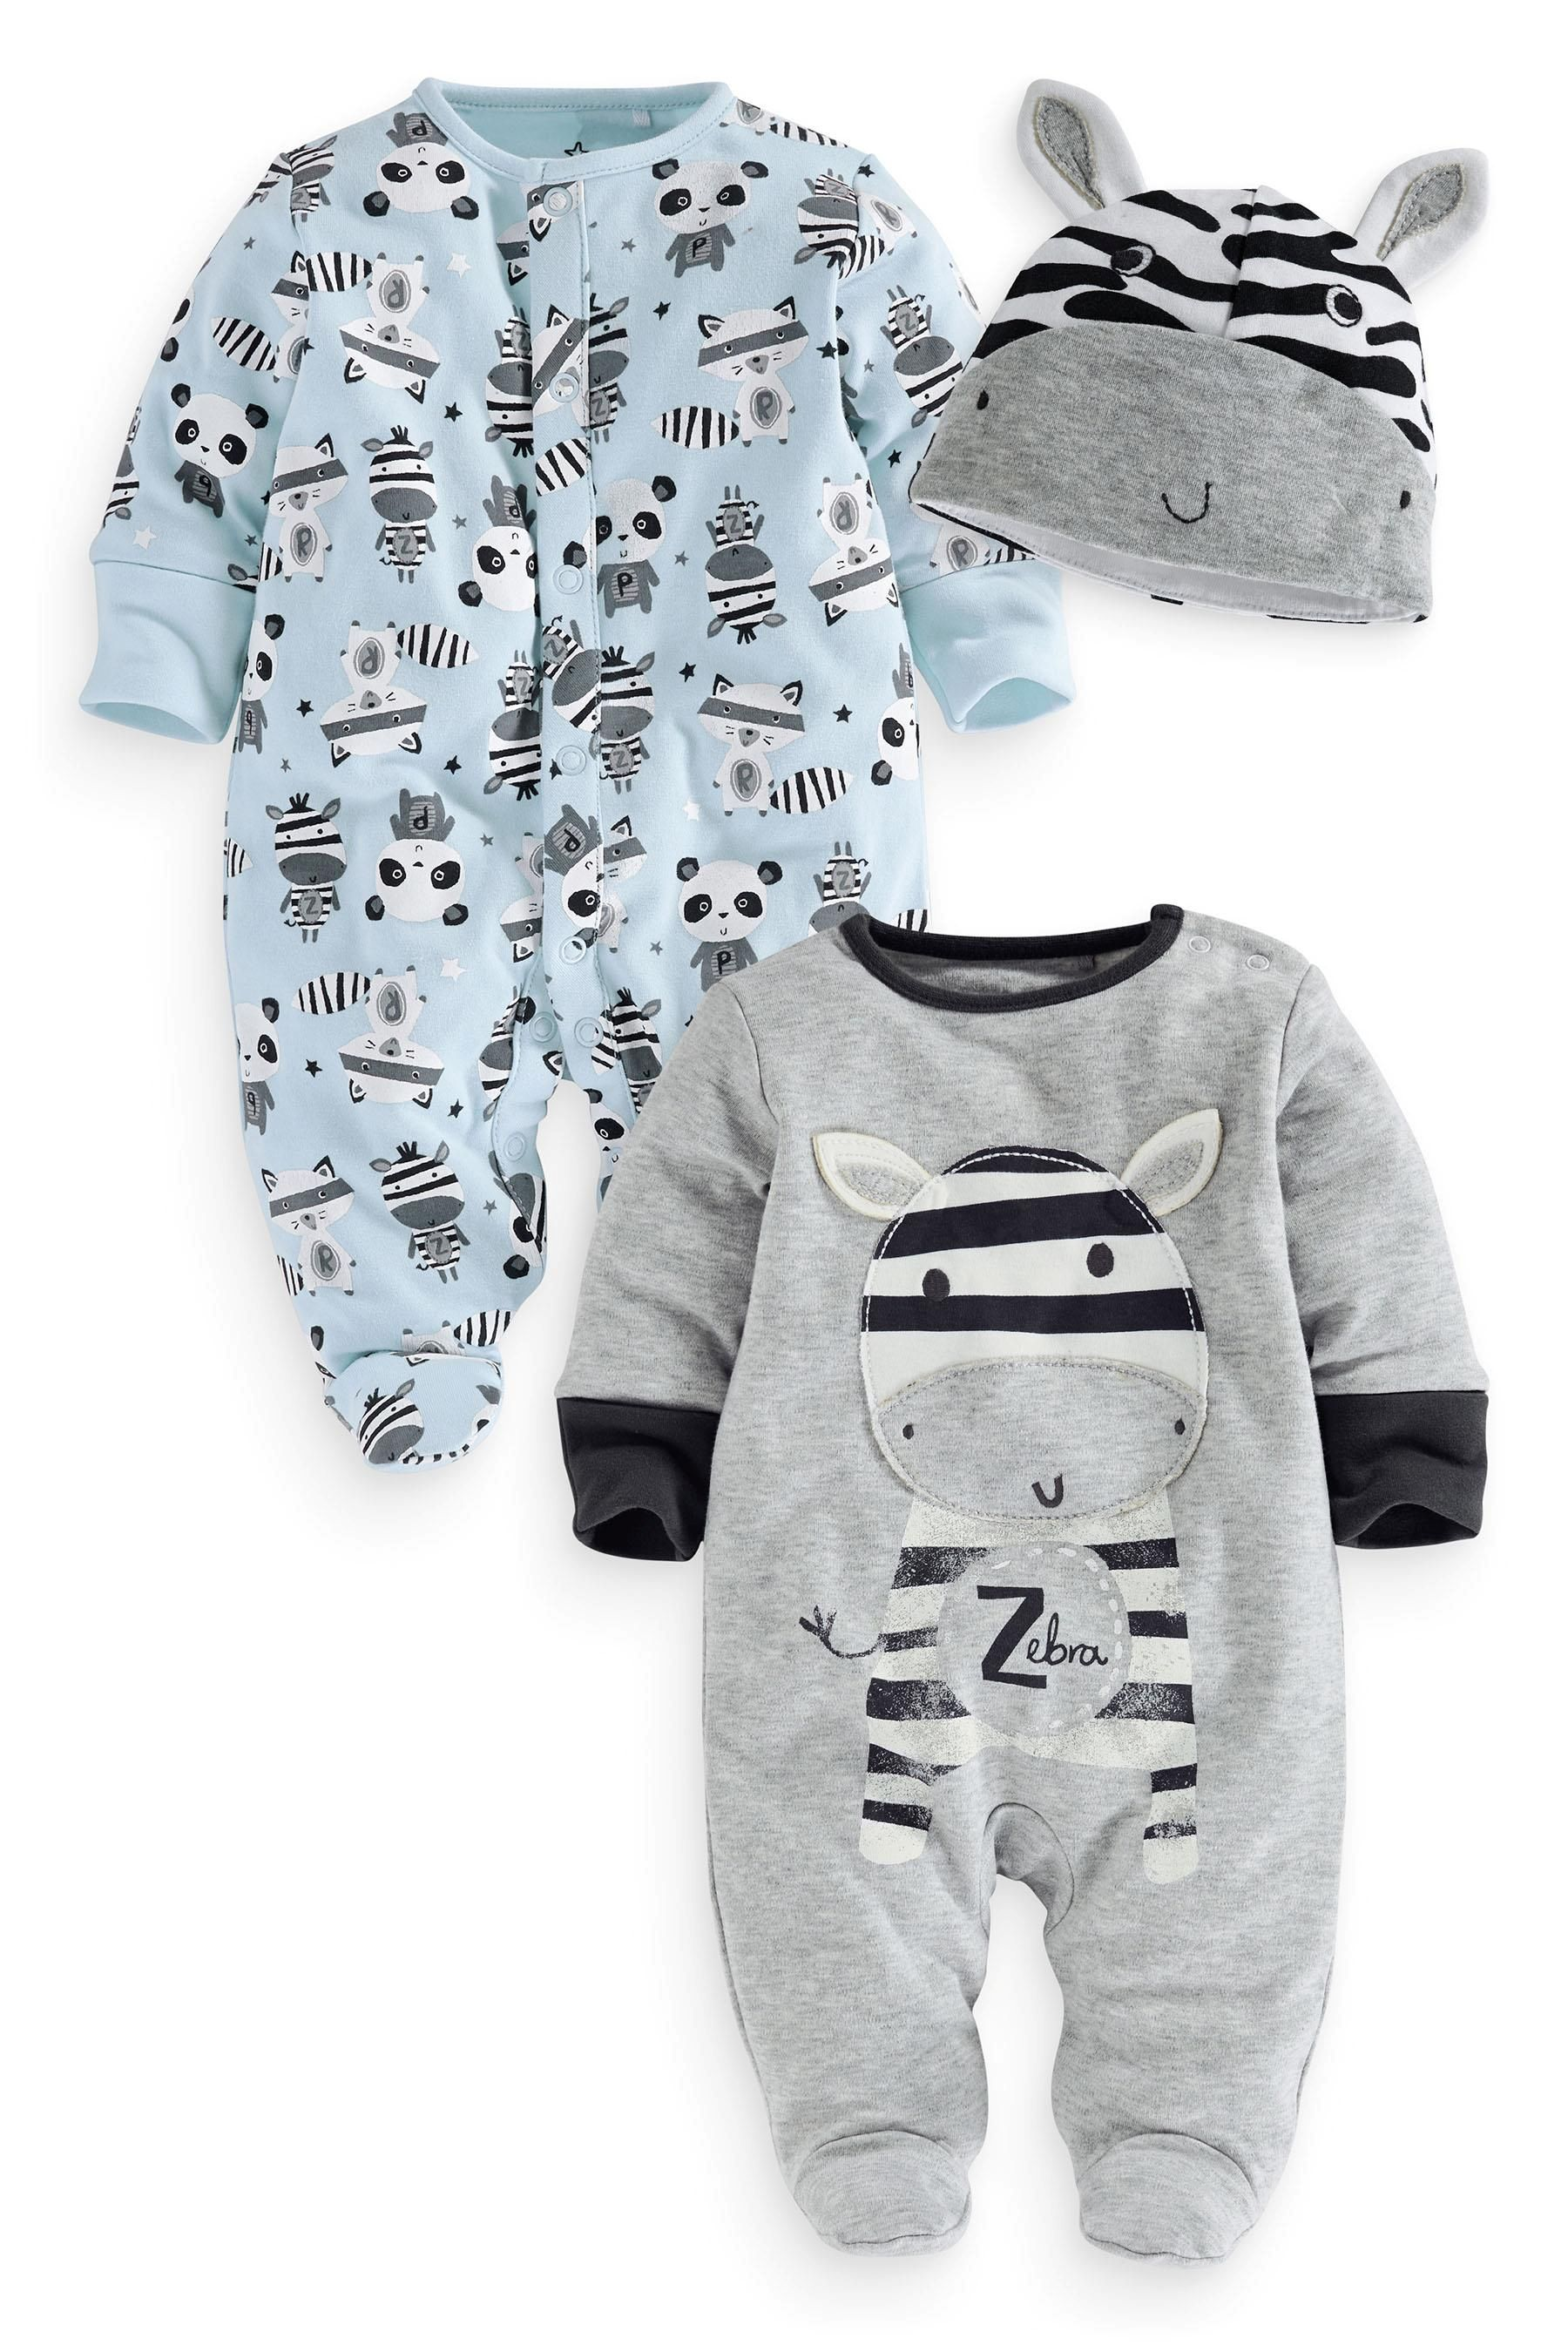 Buy Zebra Sleepsuits Two Pack With Hat 0mths 2yrs from the Next UK